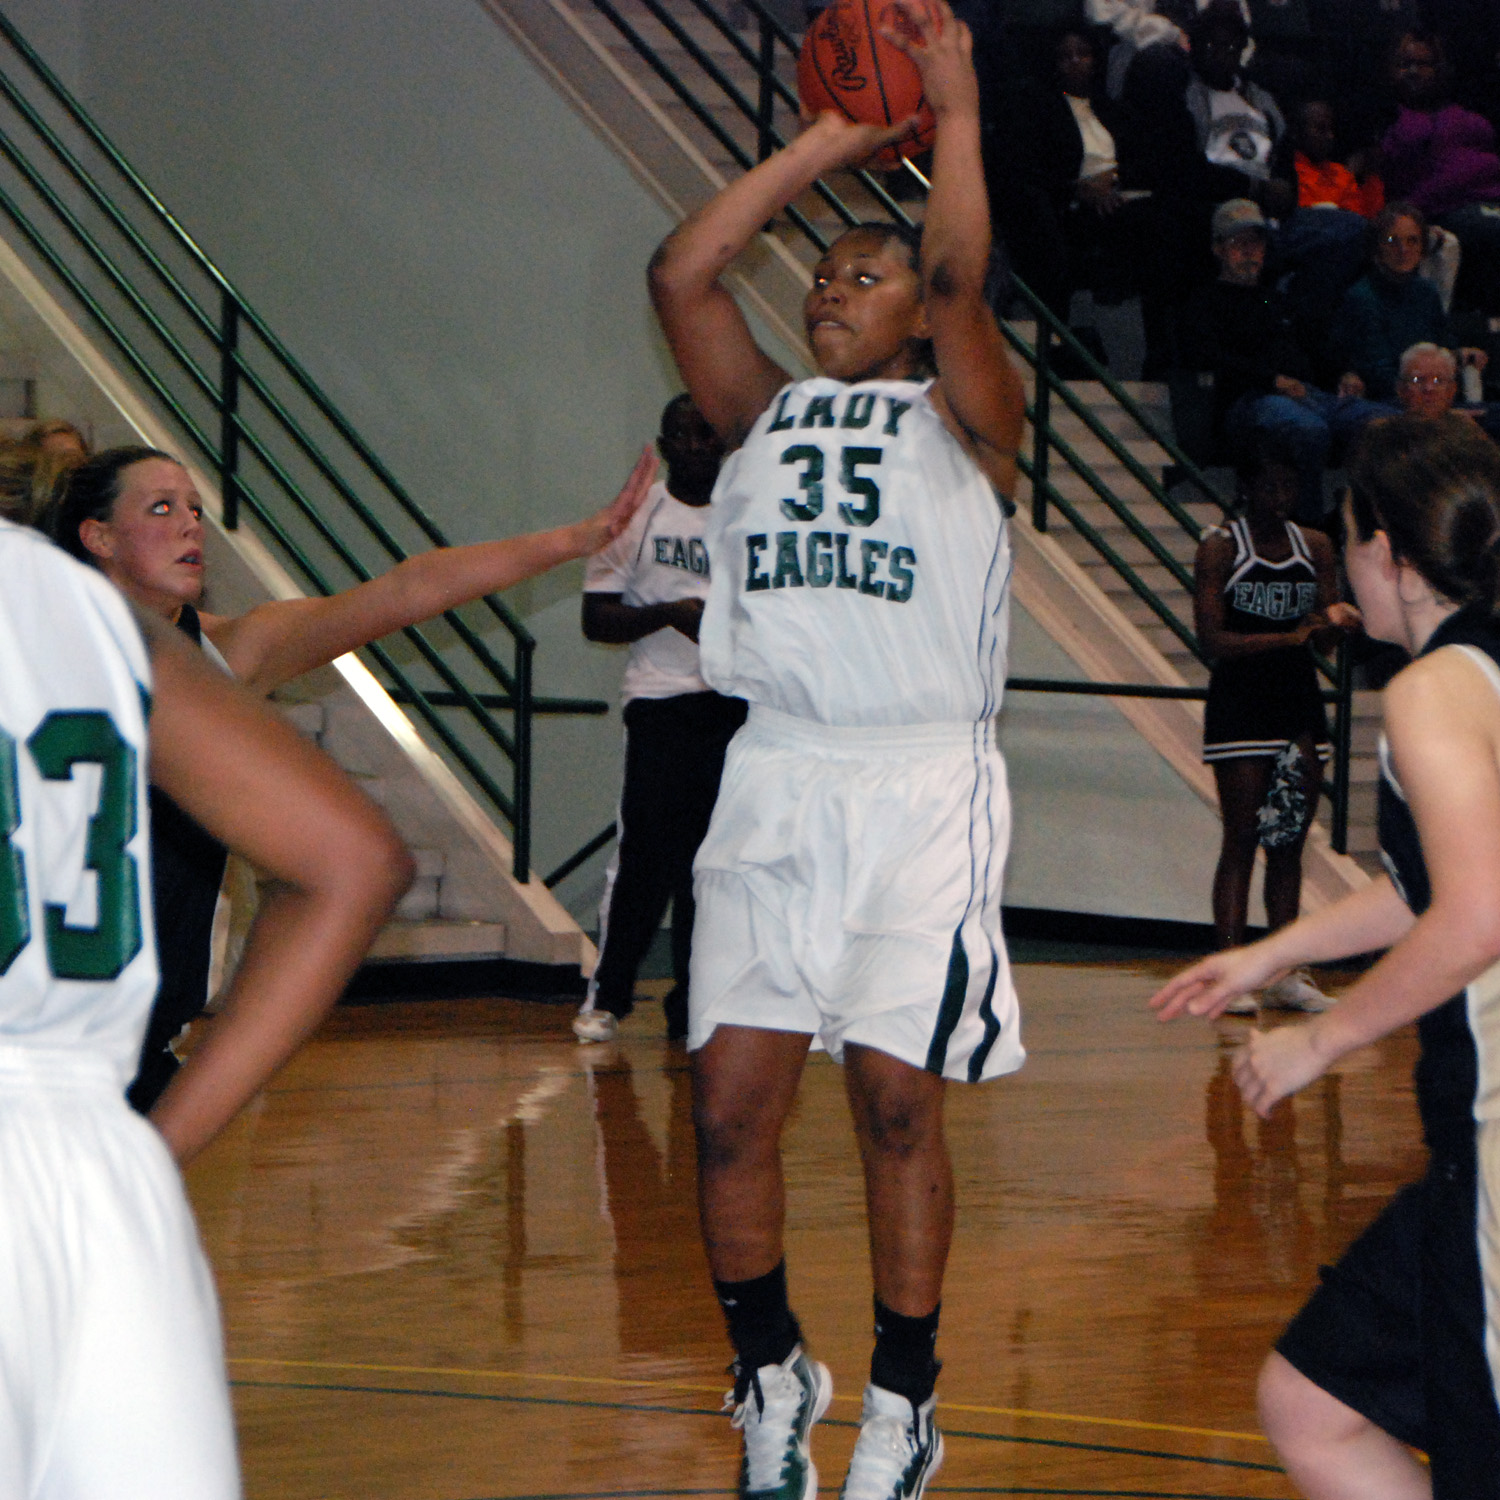 The MCC Athletics Blog December 2010